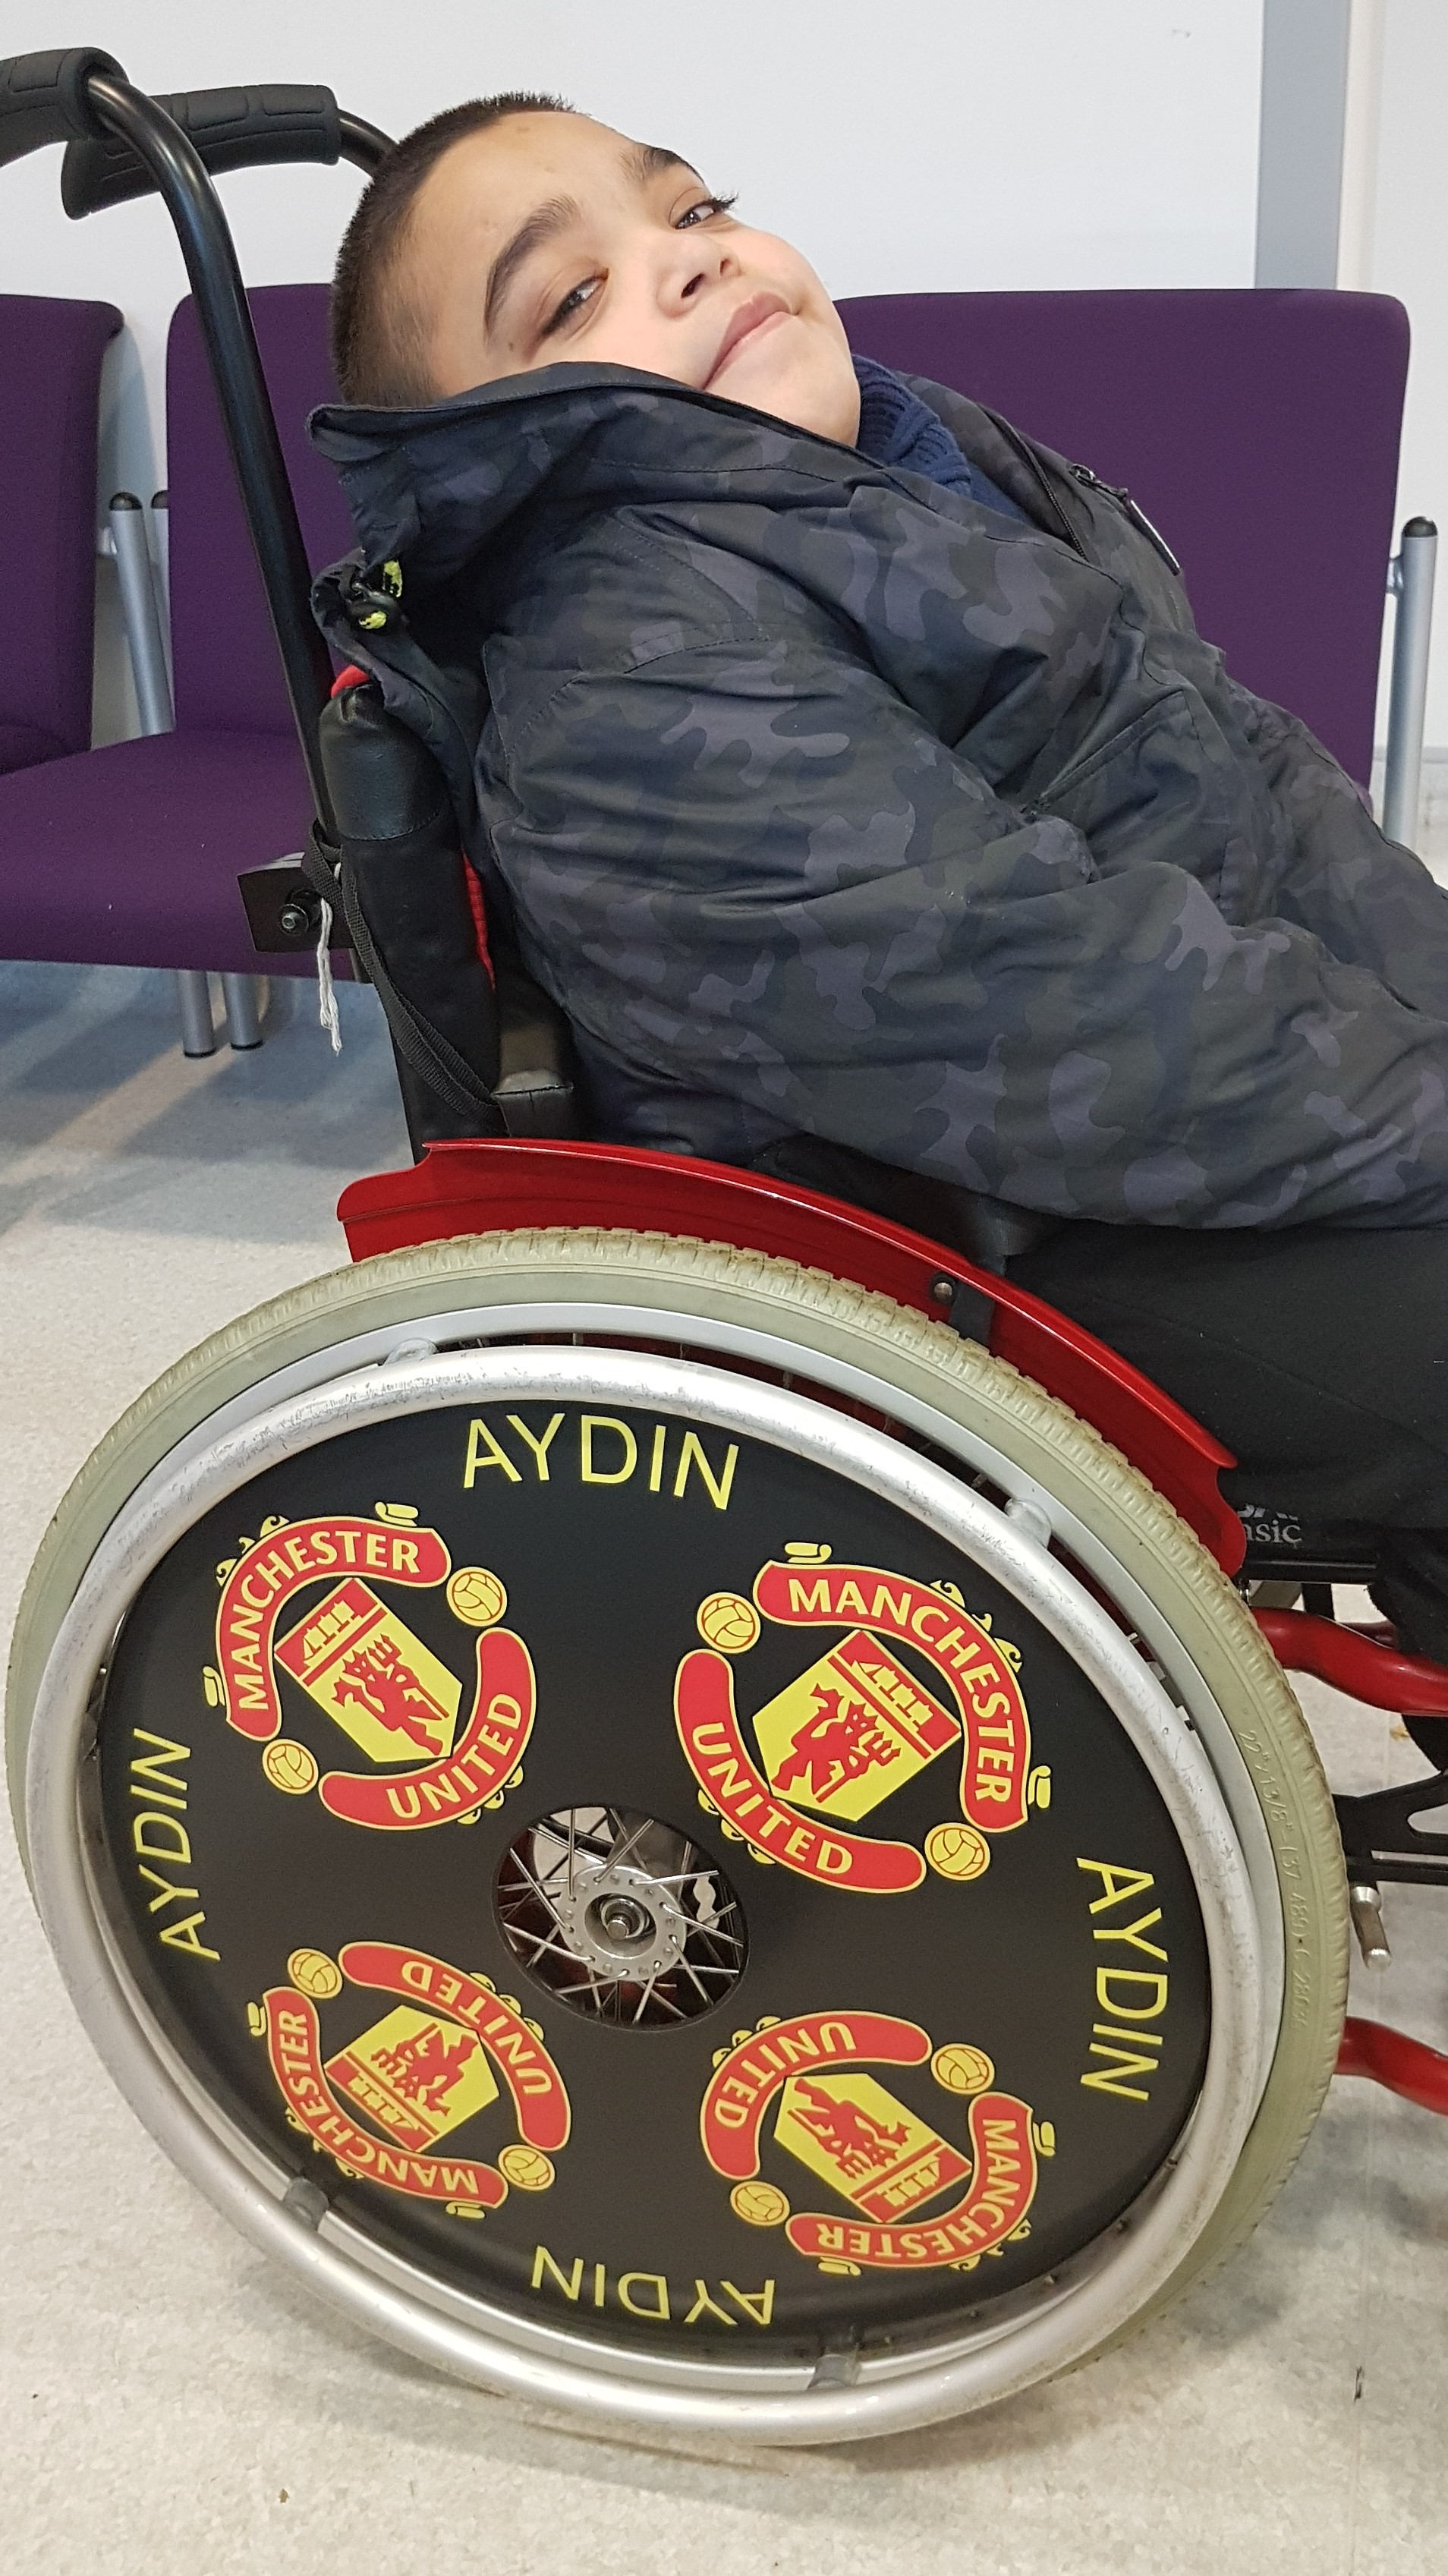 Aydin with his Manchester United SpokeGuards wheel covers